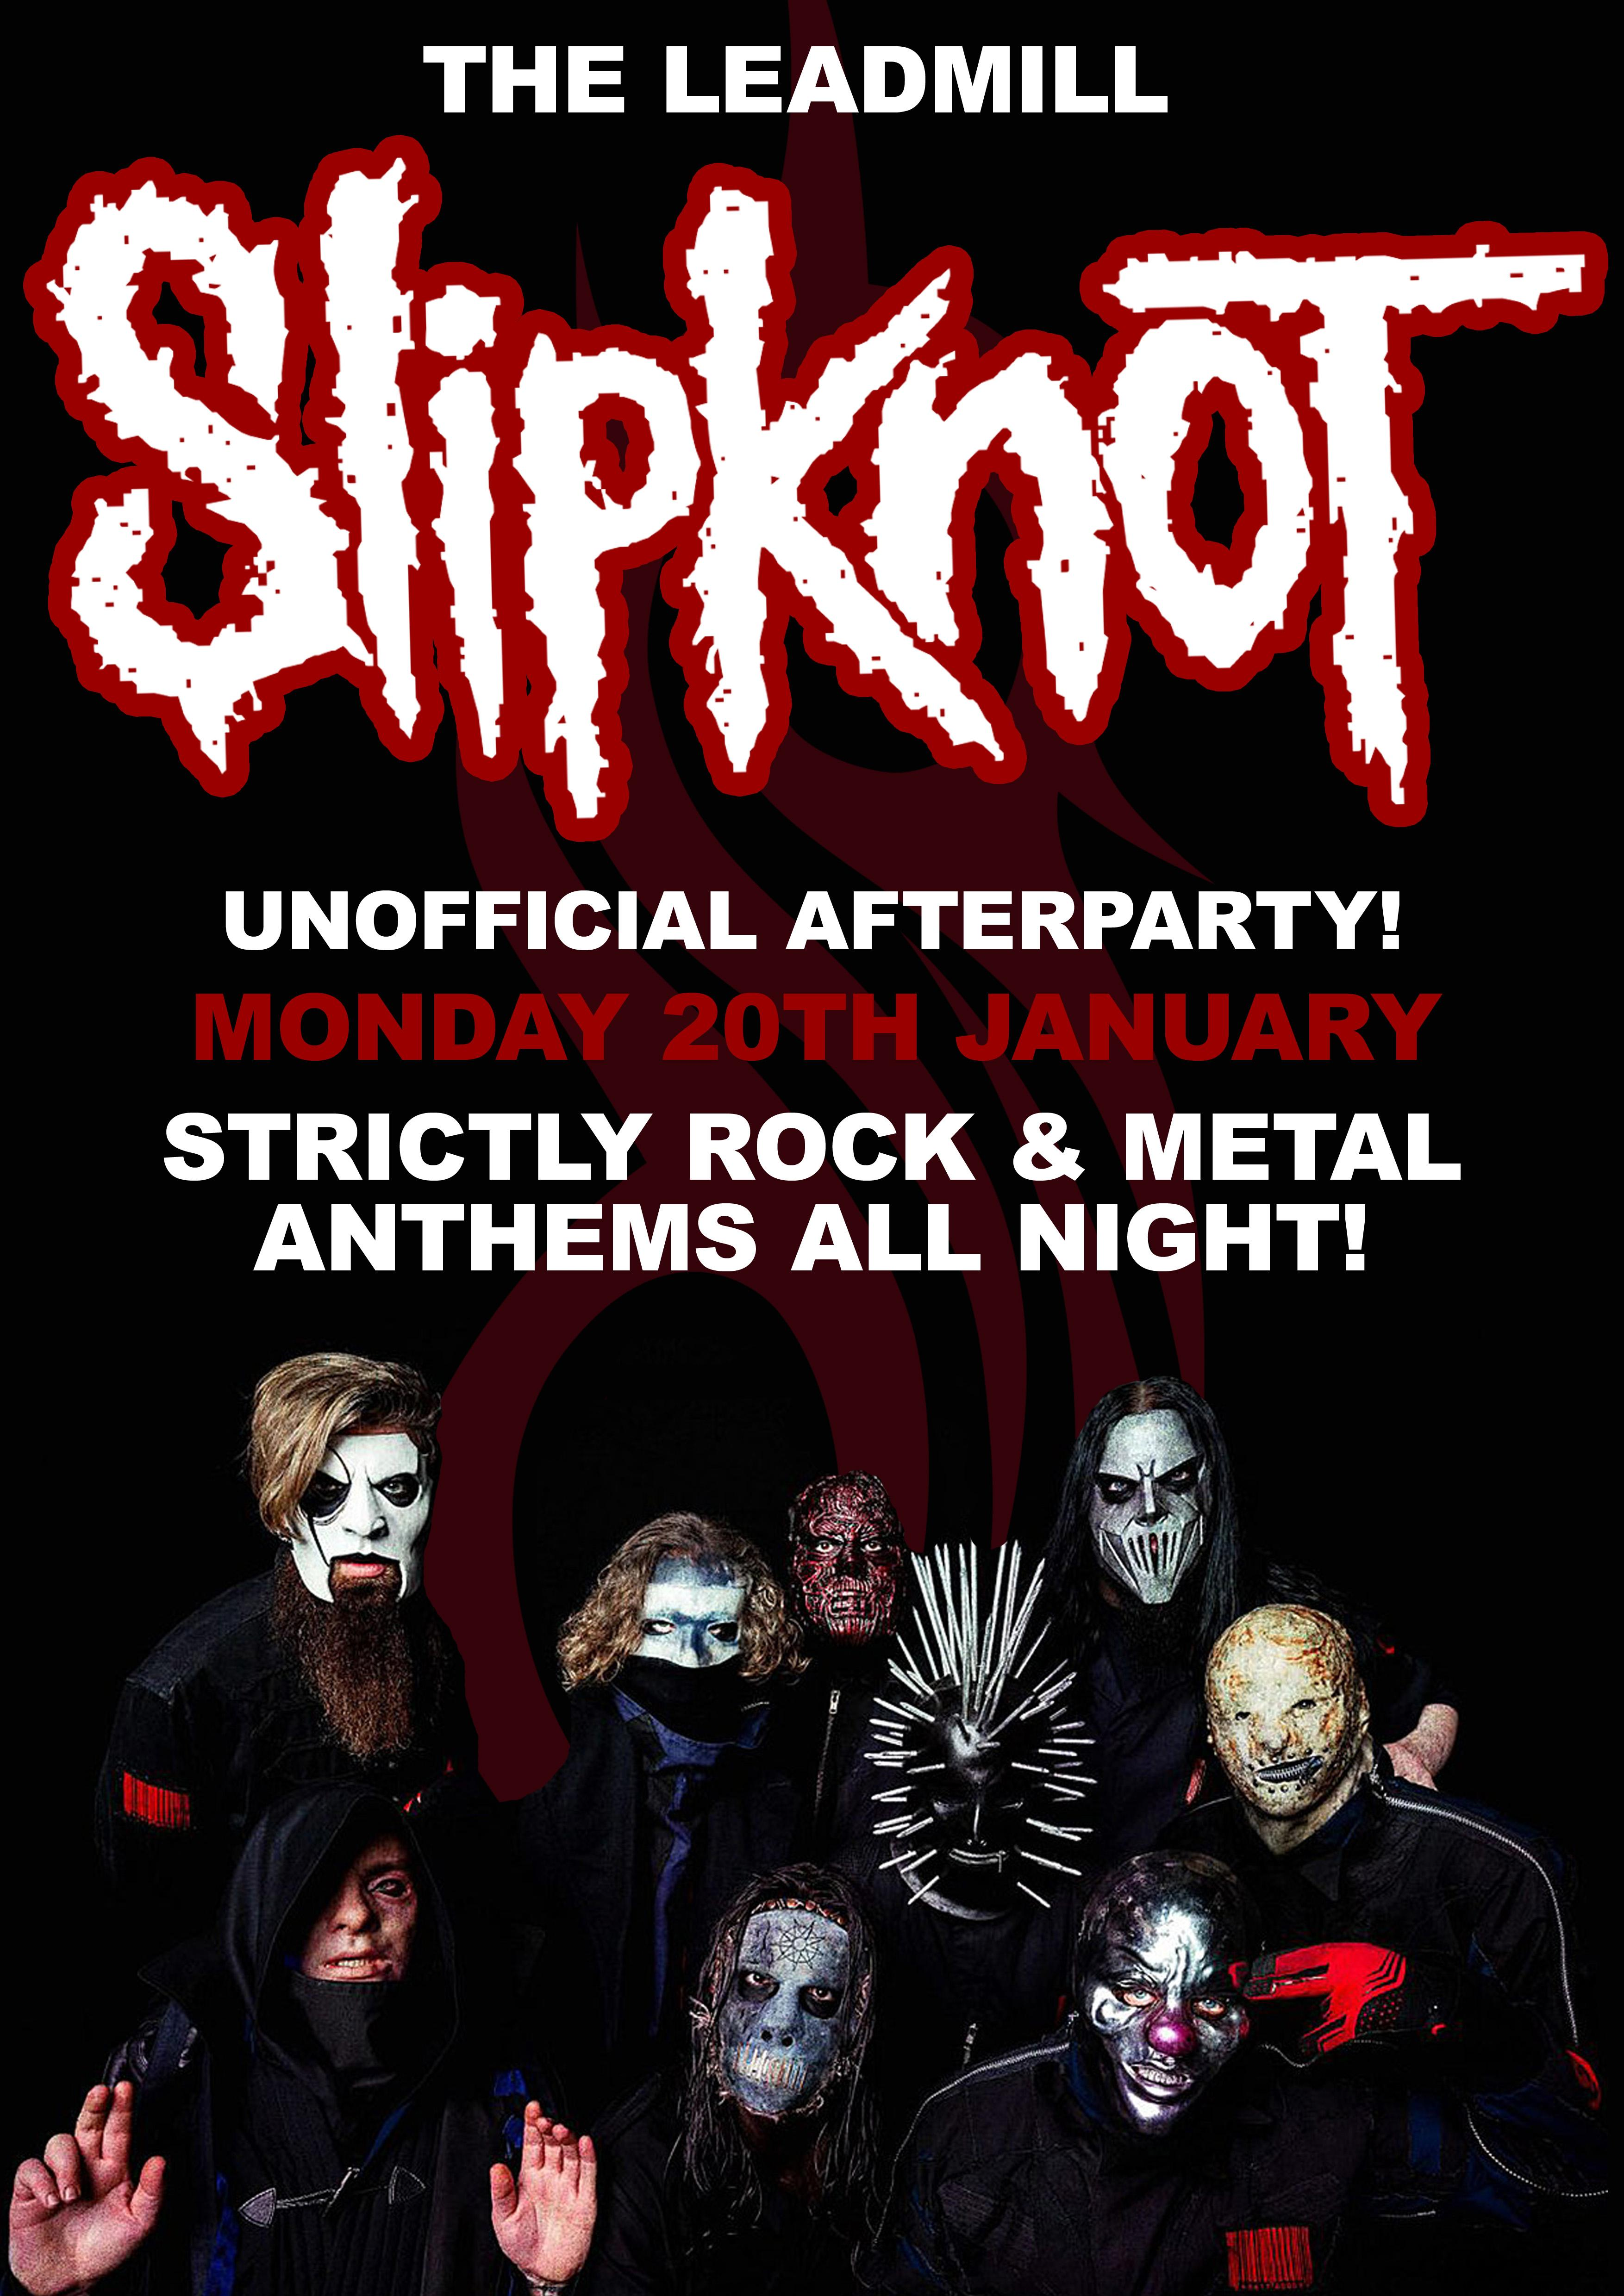 slipknot unofficial afterparty! at The Leadmill